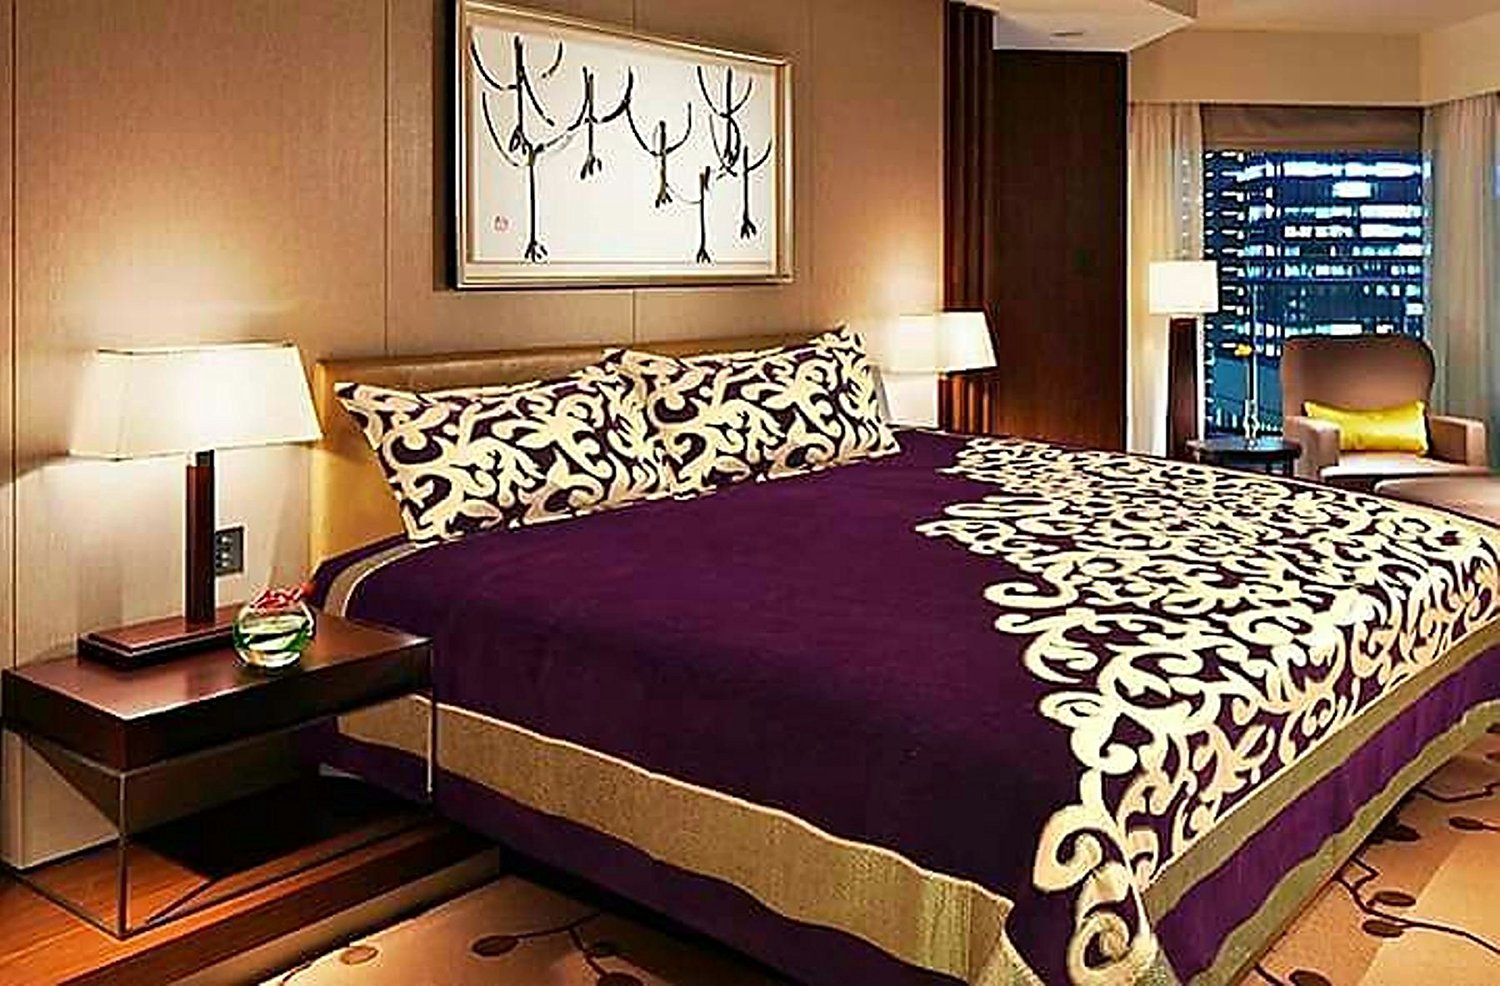 Work of Art Royal Heavy Chenille Bedcovers- Luxury Purple